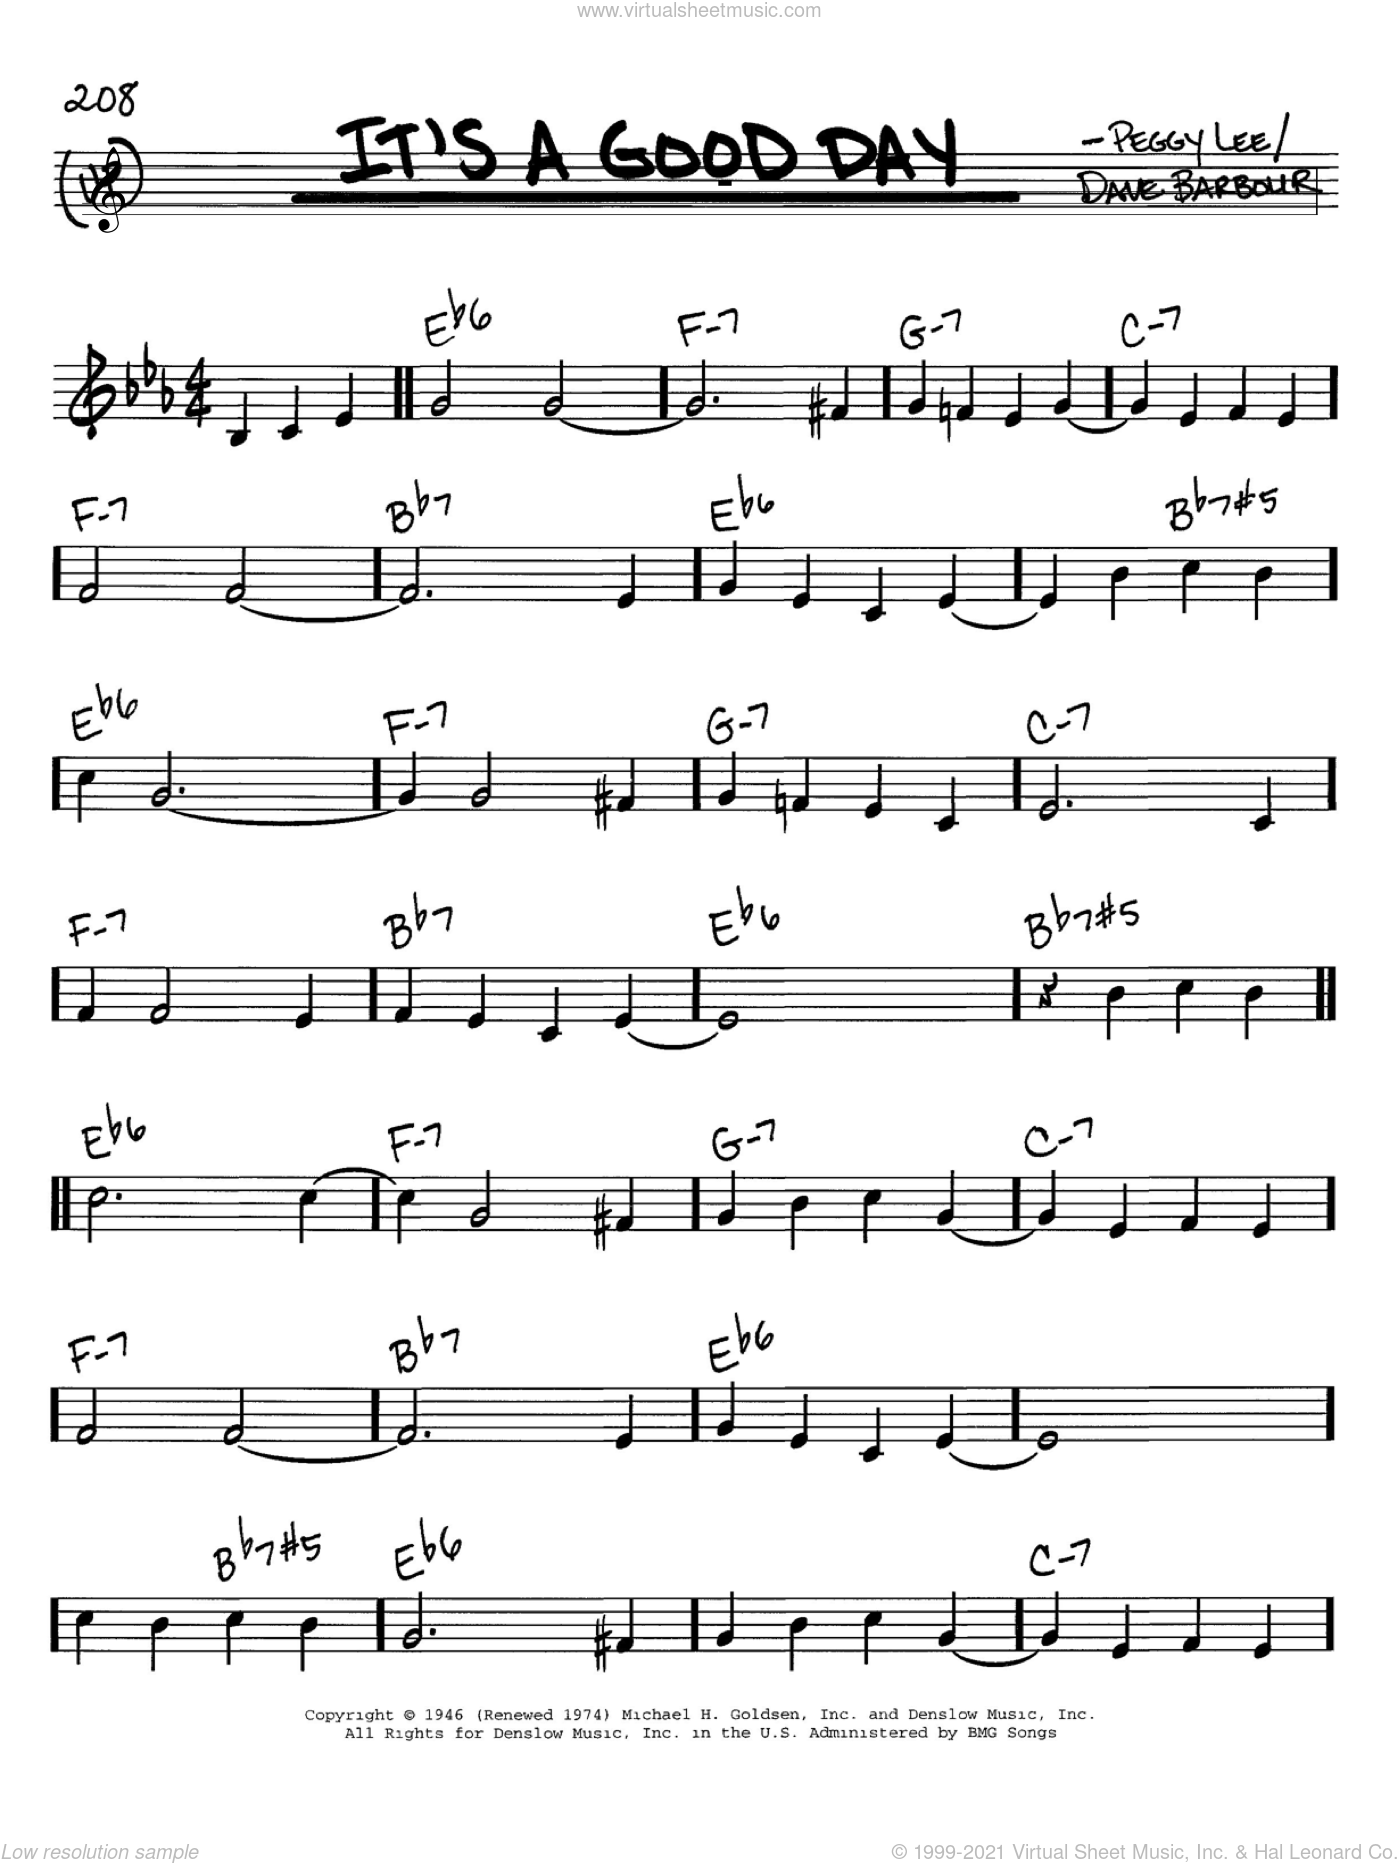 It's A Good Day sheet music for voice and other instruments (in C) by Peggy Lee and Dave Barbour, intermediate